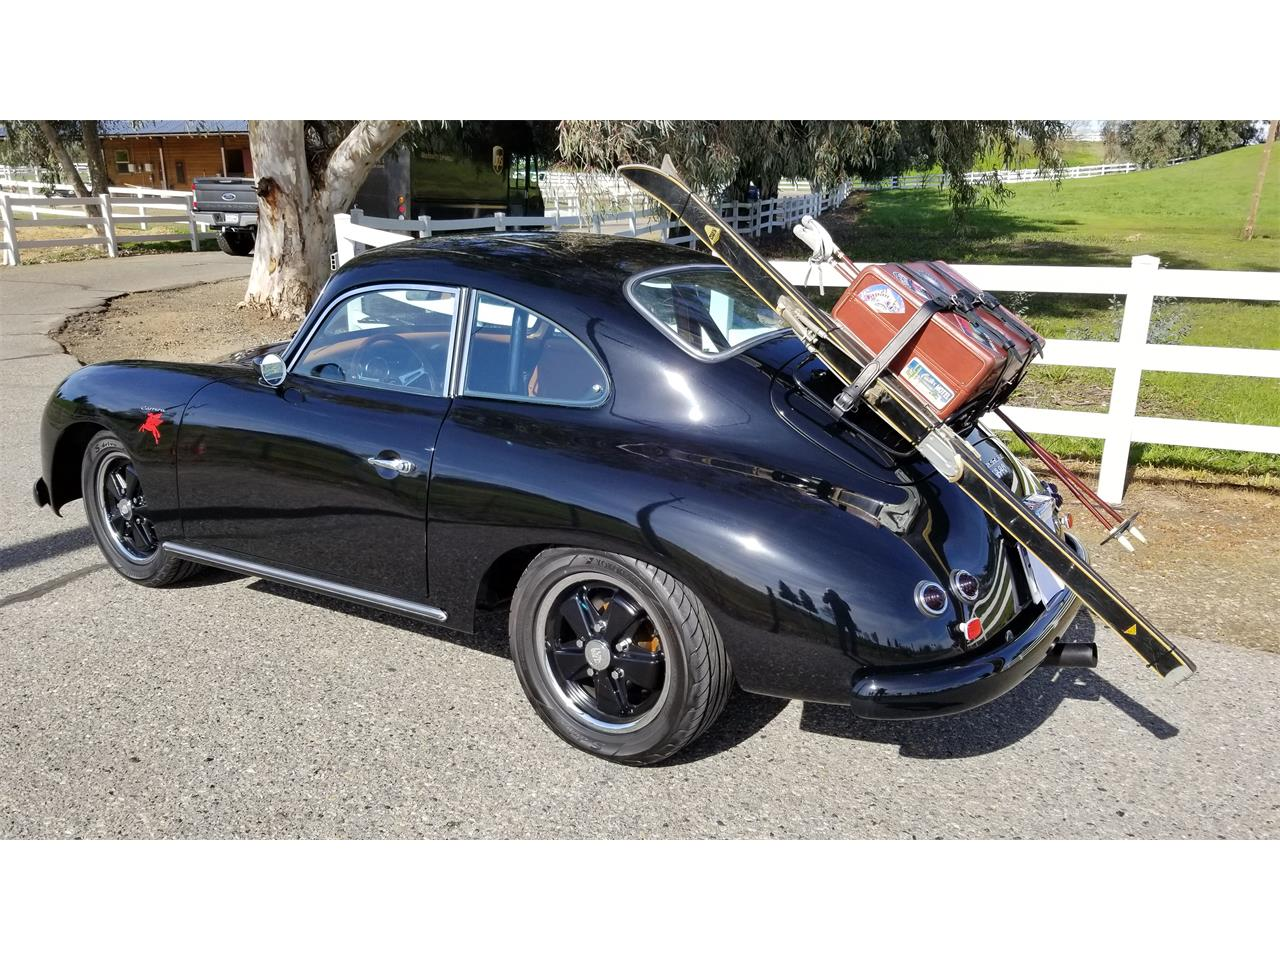 Large Picture of Classic 1957 Porsche 356A located in California - $43,750.00 Offered by a Private Seller - PGQF